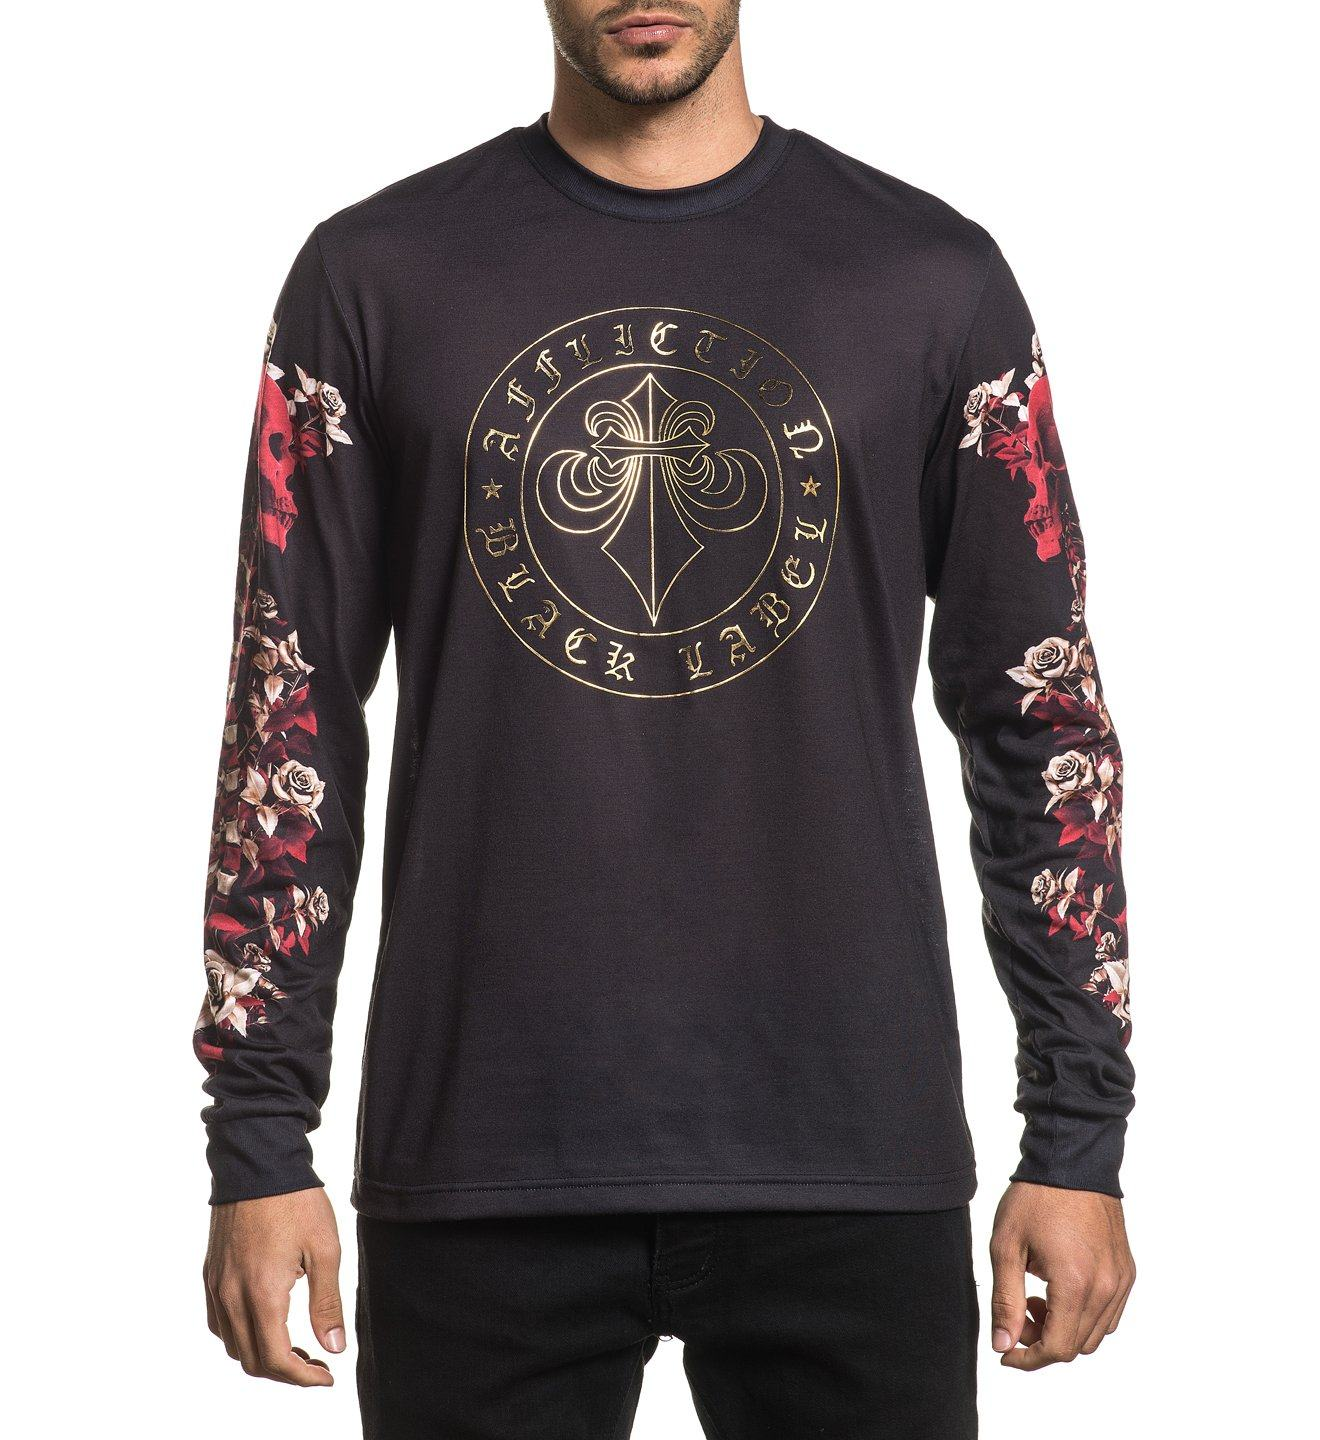 Mens Long Sleeve Tees - Spine